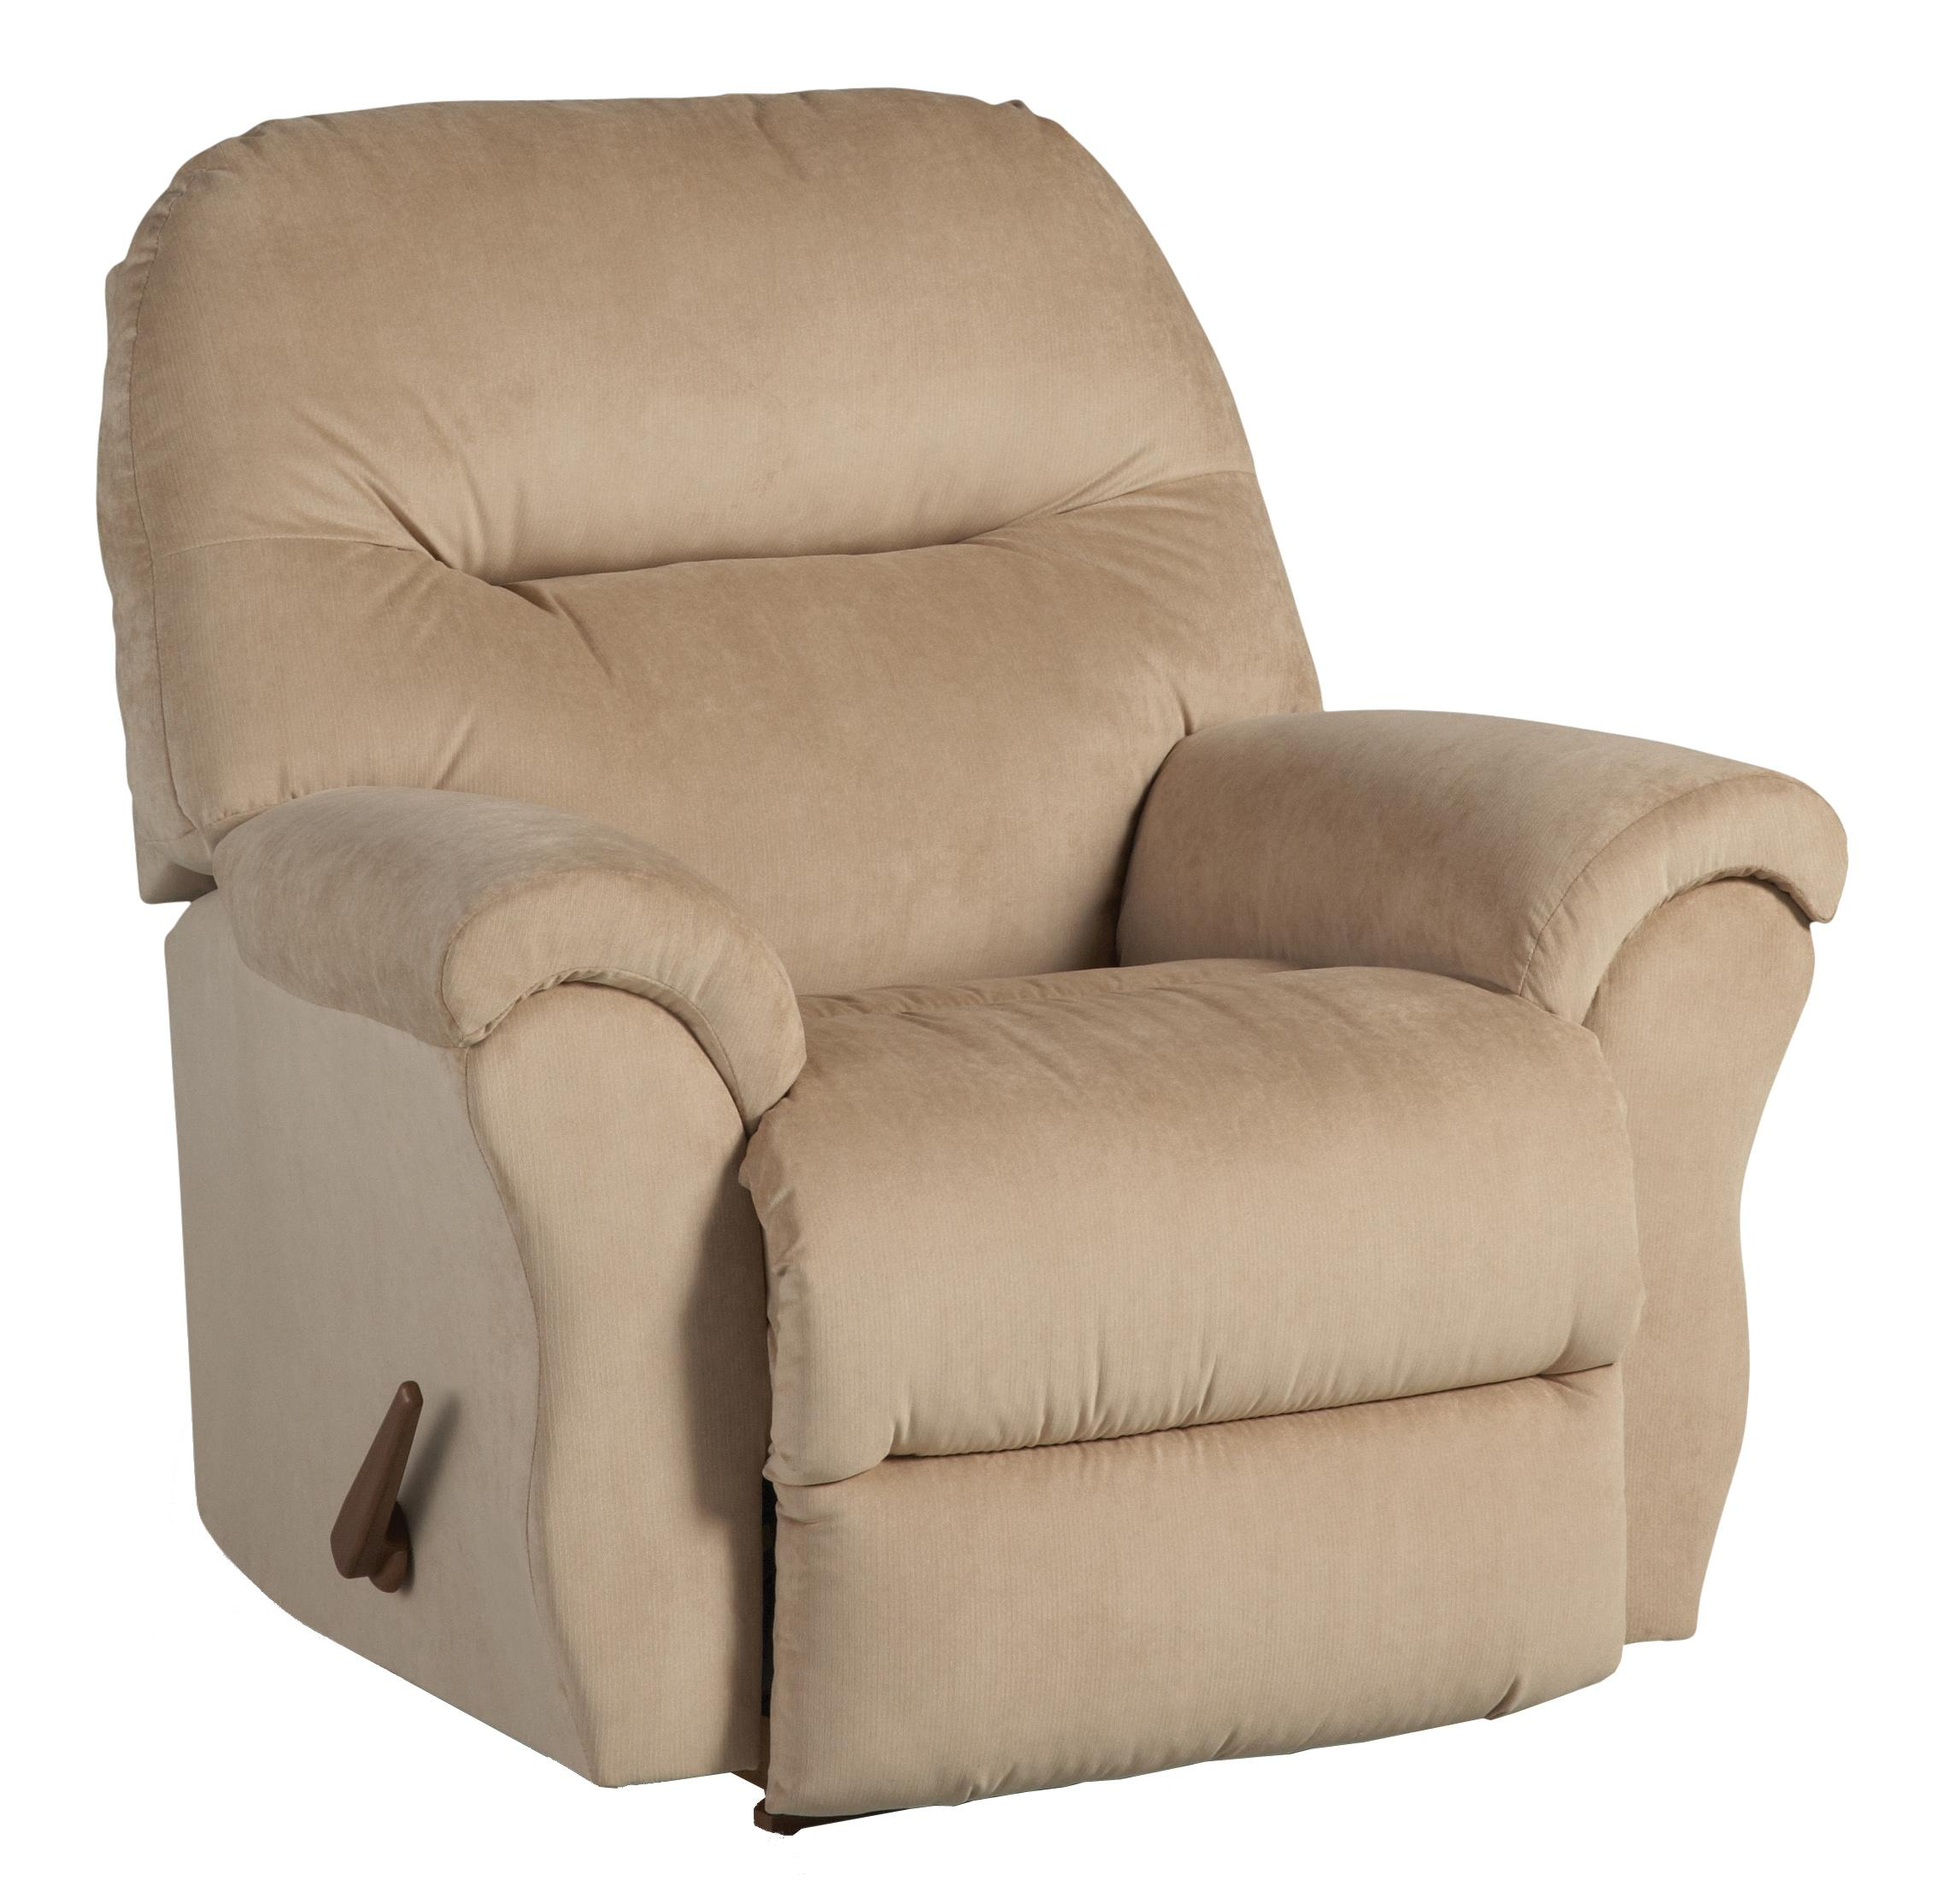 Best Home Furnishings Bodie Power Lift Recliner - Item Number: 8NW11